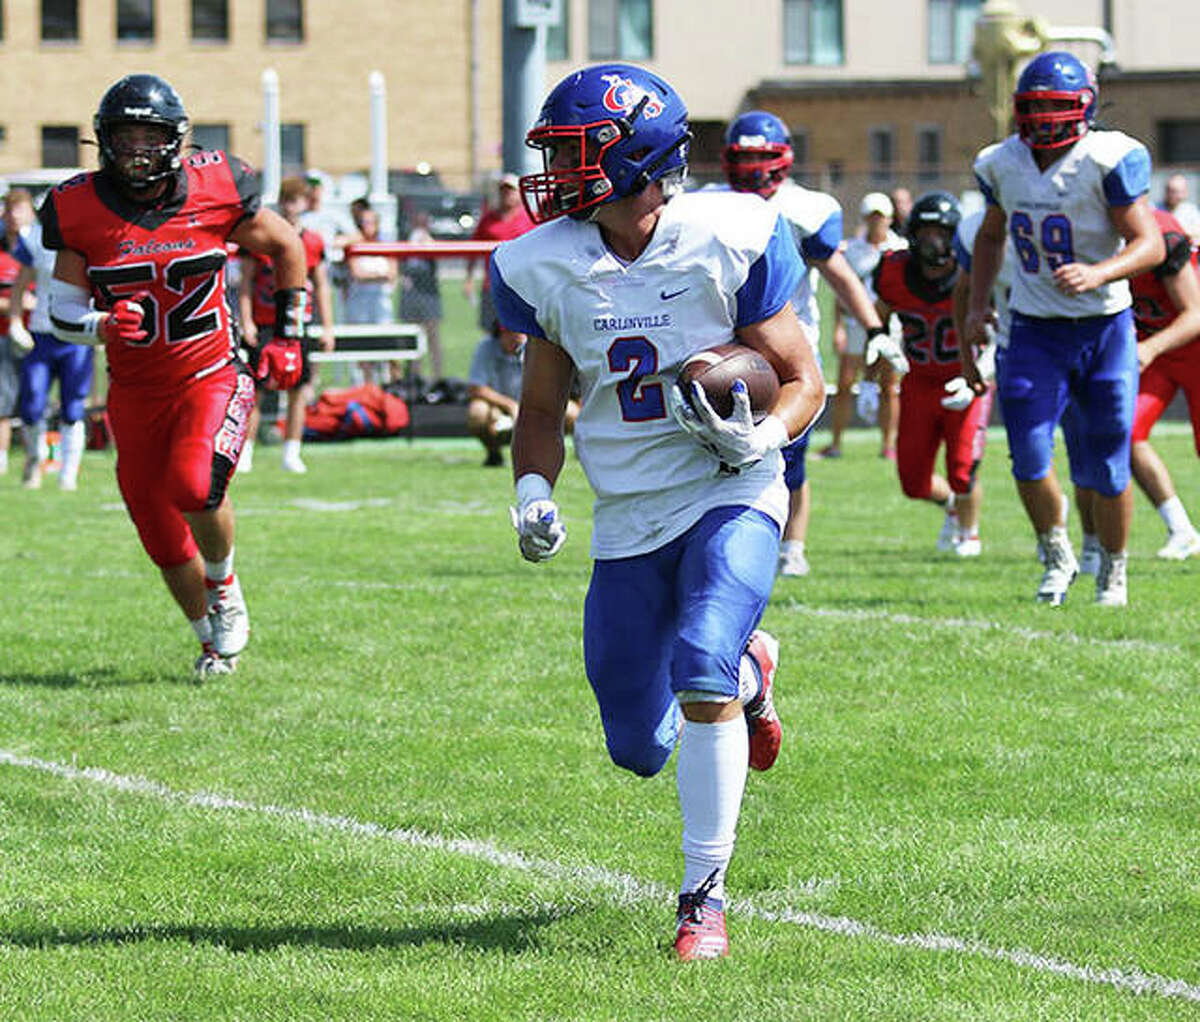 Carlinville's Carson Wiser runs from defenders in a Week 1 win at Gibson City. On Friday in Gillespie, Wiser had nine receptions for 126 yards in the Cavaliers' SCC win over the Miners.